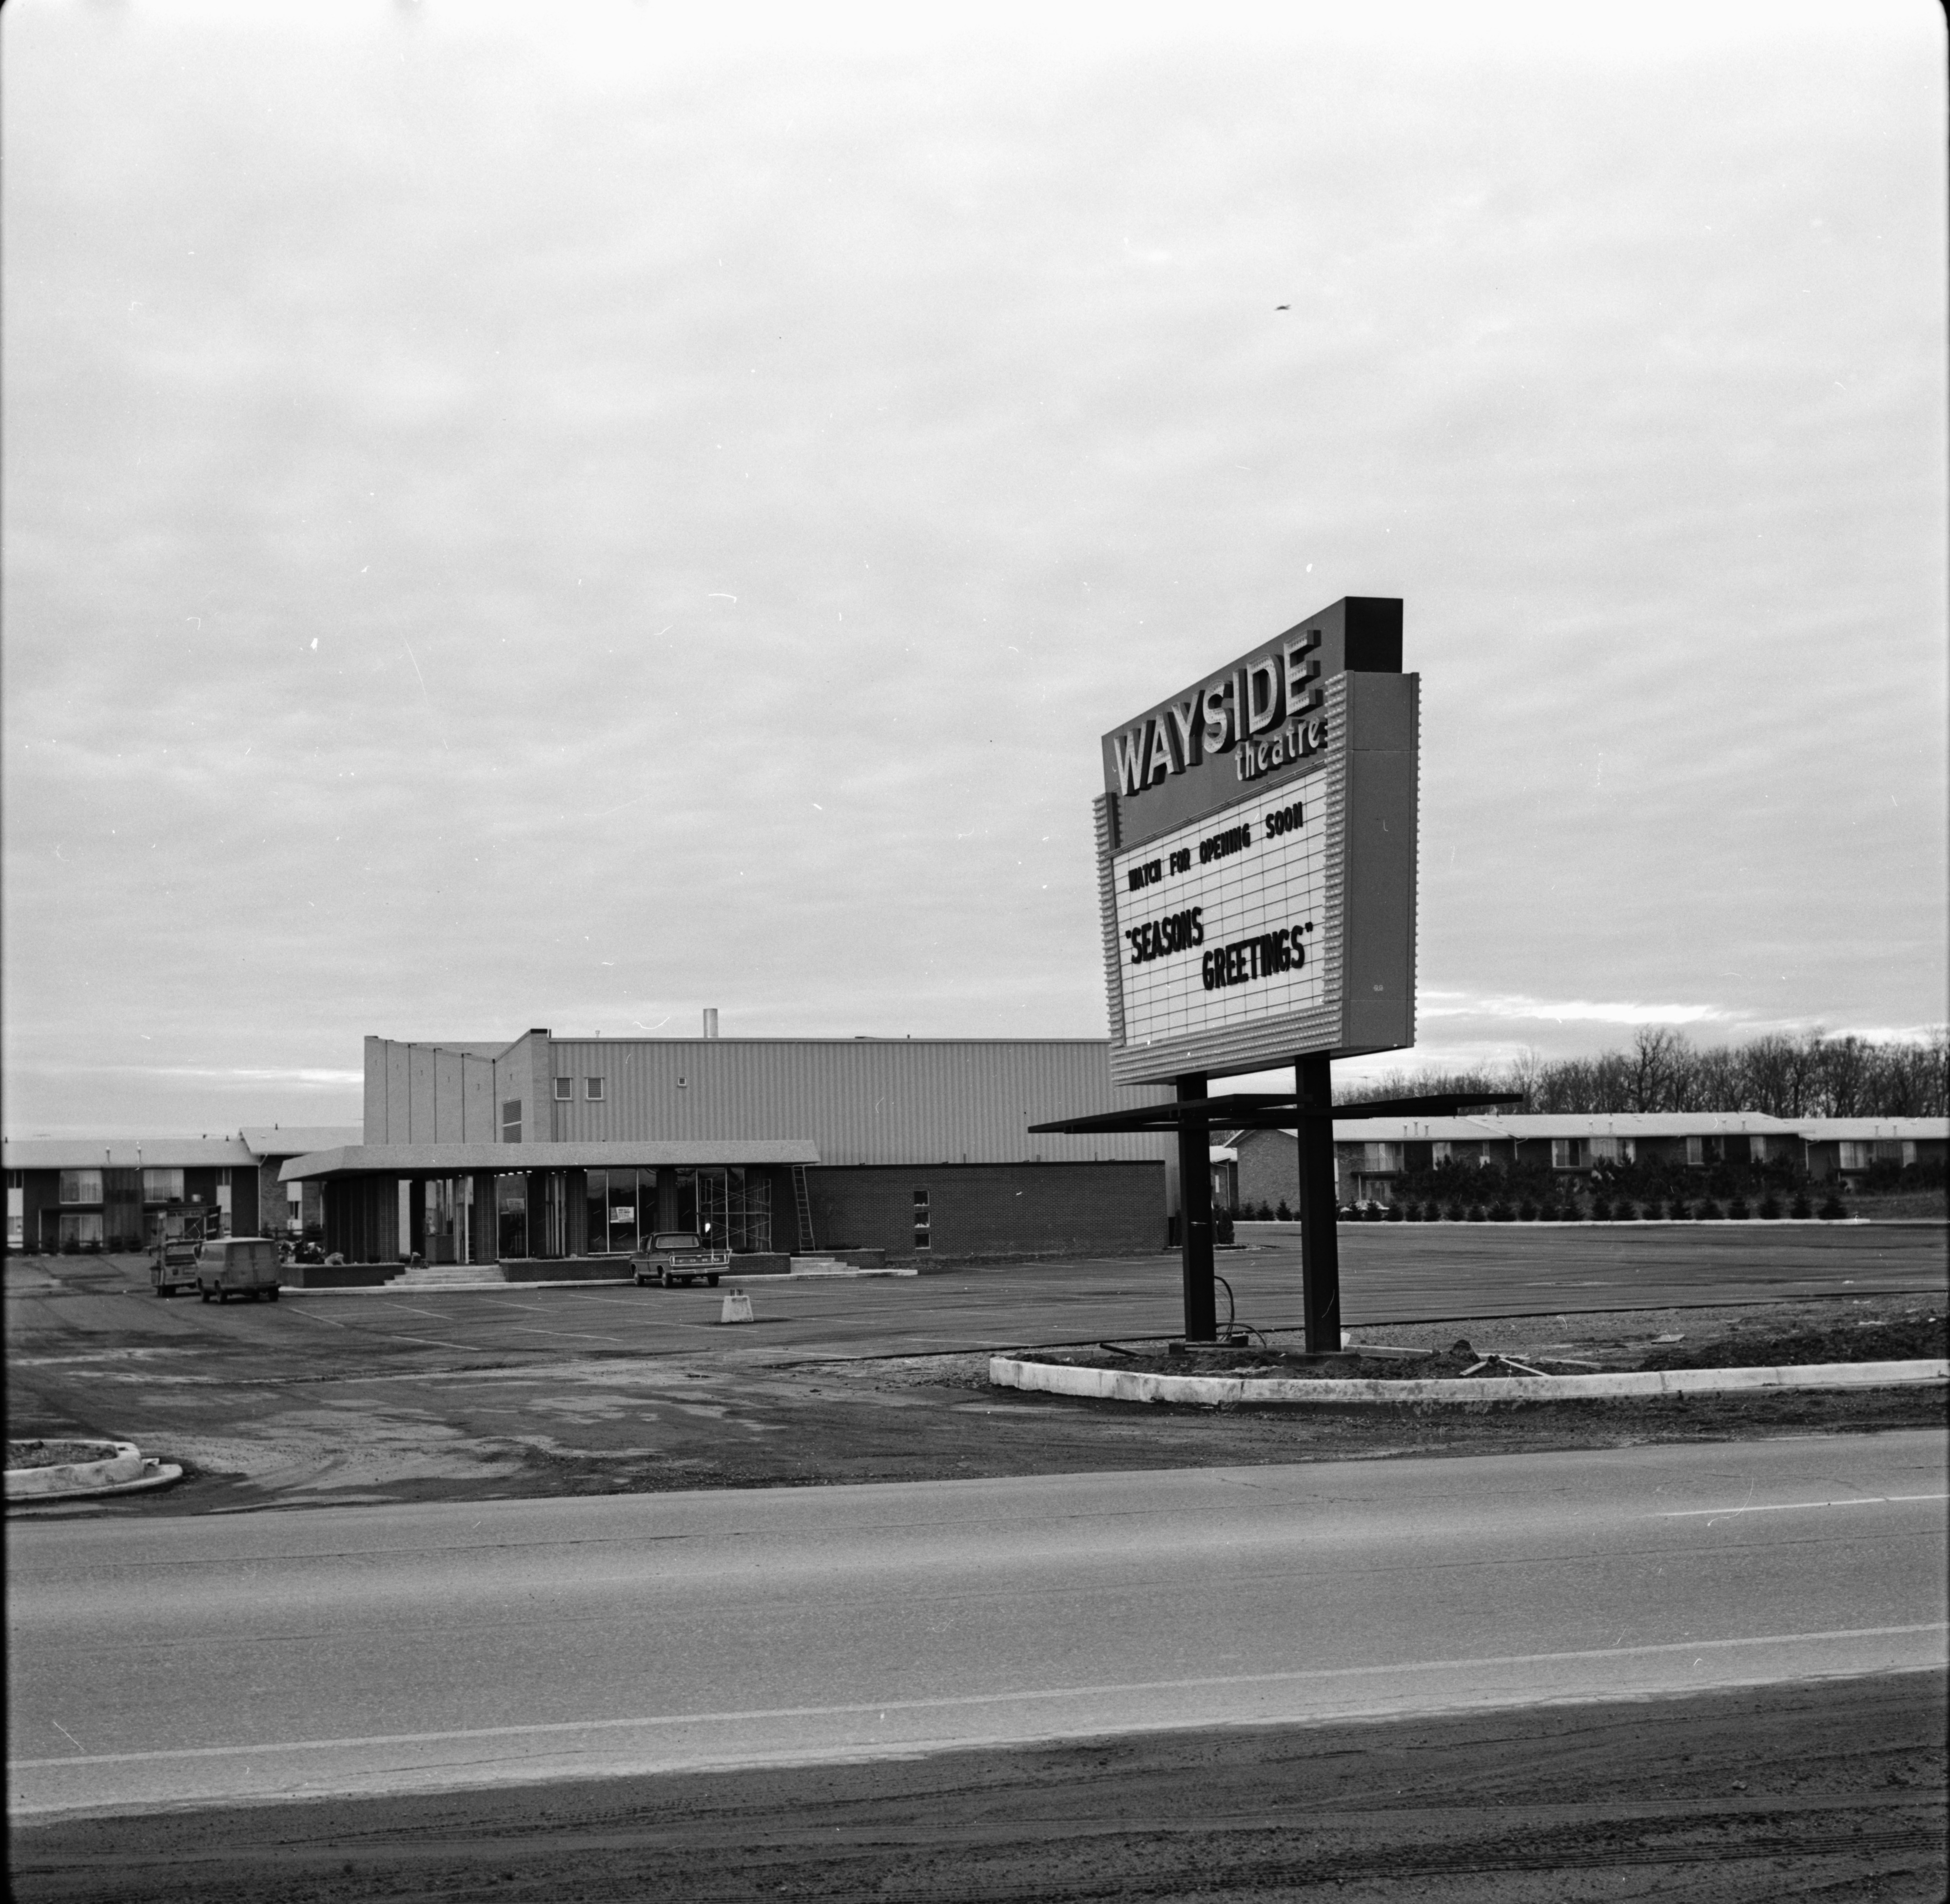 Wayside Theatre, December 1967 image